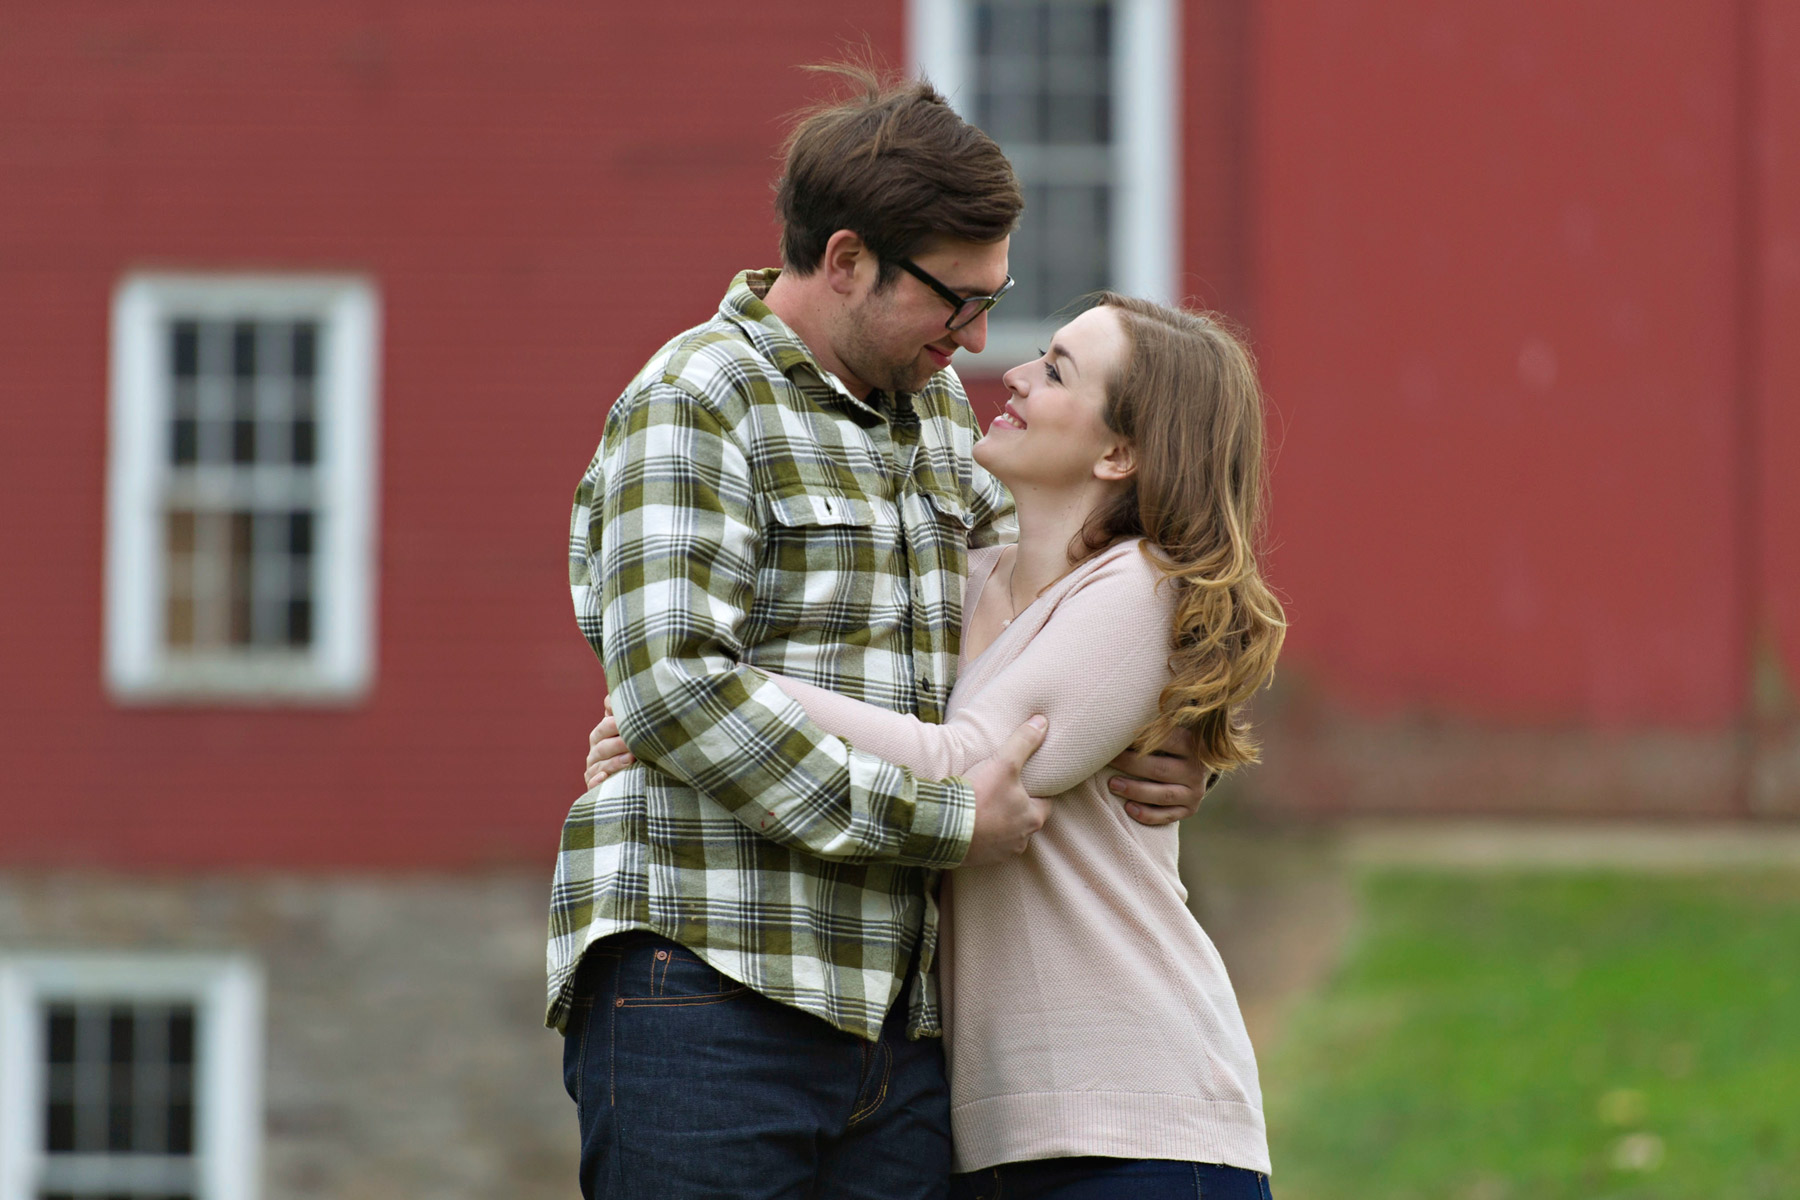 Bucks_county_engagement_session_Tinicum_Park_couple_embracing.JPG